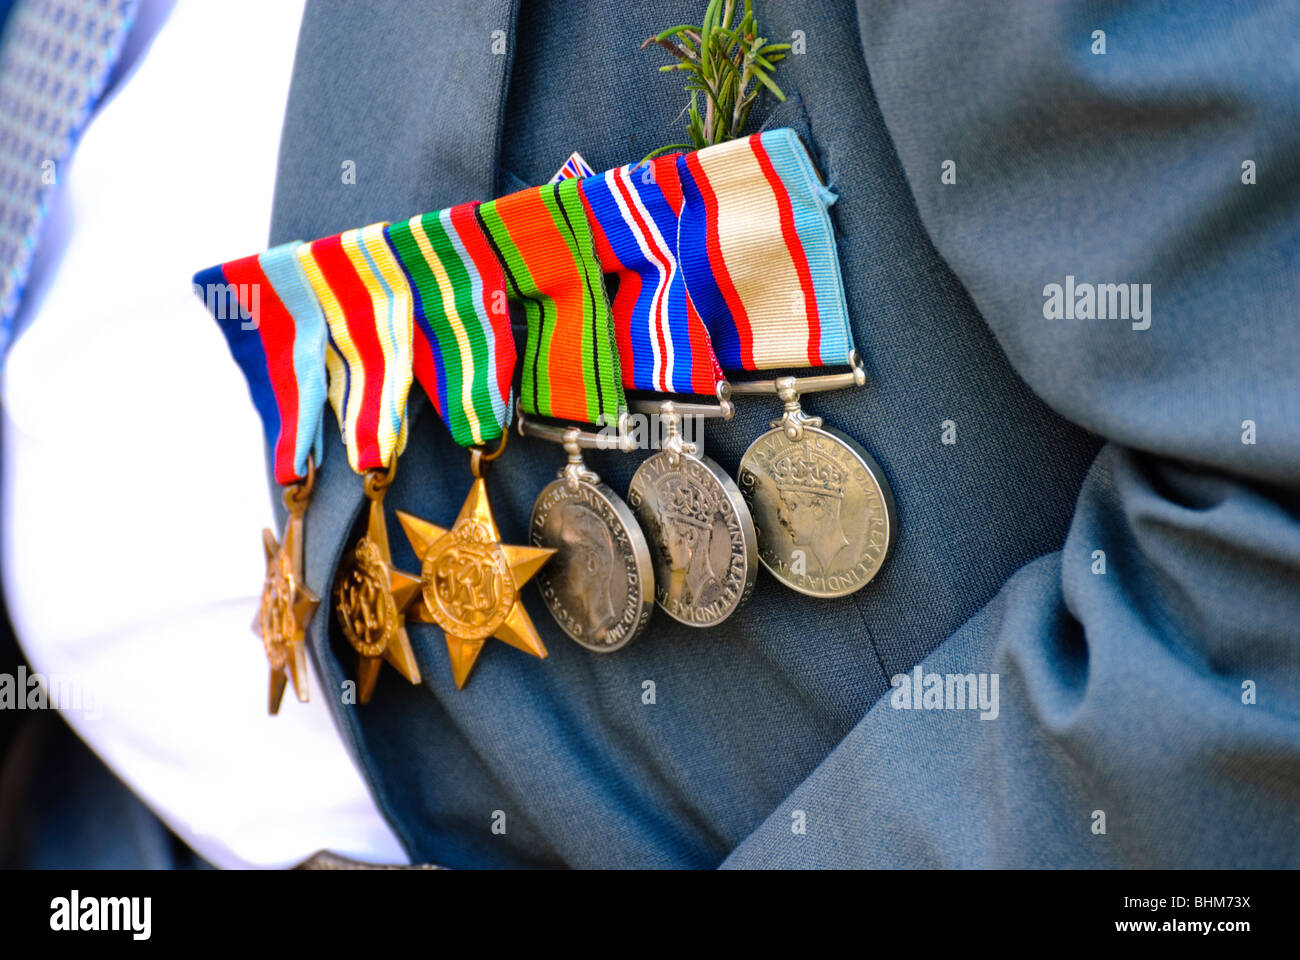 War medals, proudly worn by an older war veteran during an ANZAC Day parade, Australia. Brave military veteran proudly - Stock Image